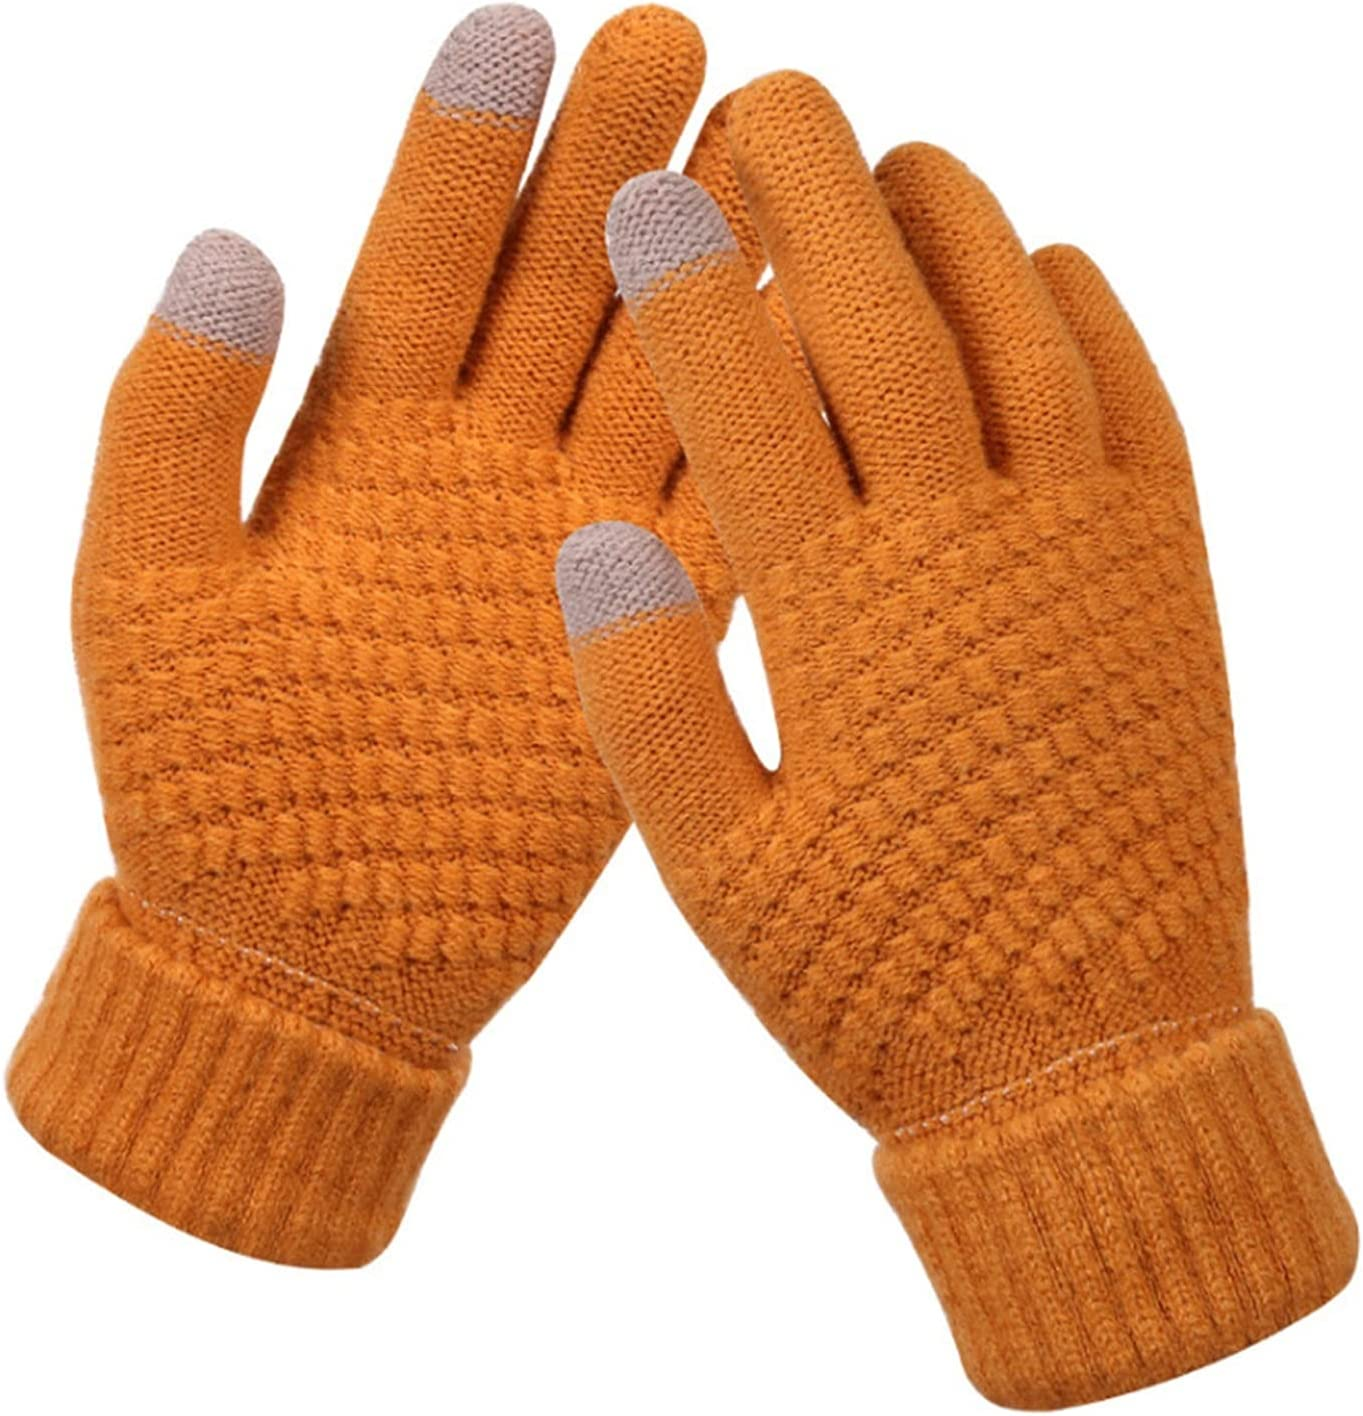 LDDJ Gloves Women's Winter Touch Screen Gloves Thicken Warm Knitted Stretch Gloves Imitation Wool Full Finger Outdoor Skiing Gloves Keep Warm (Color : Khaki, Gloves Size : One Size)